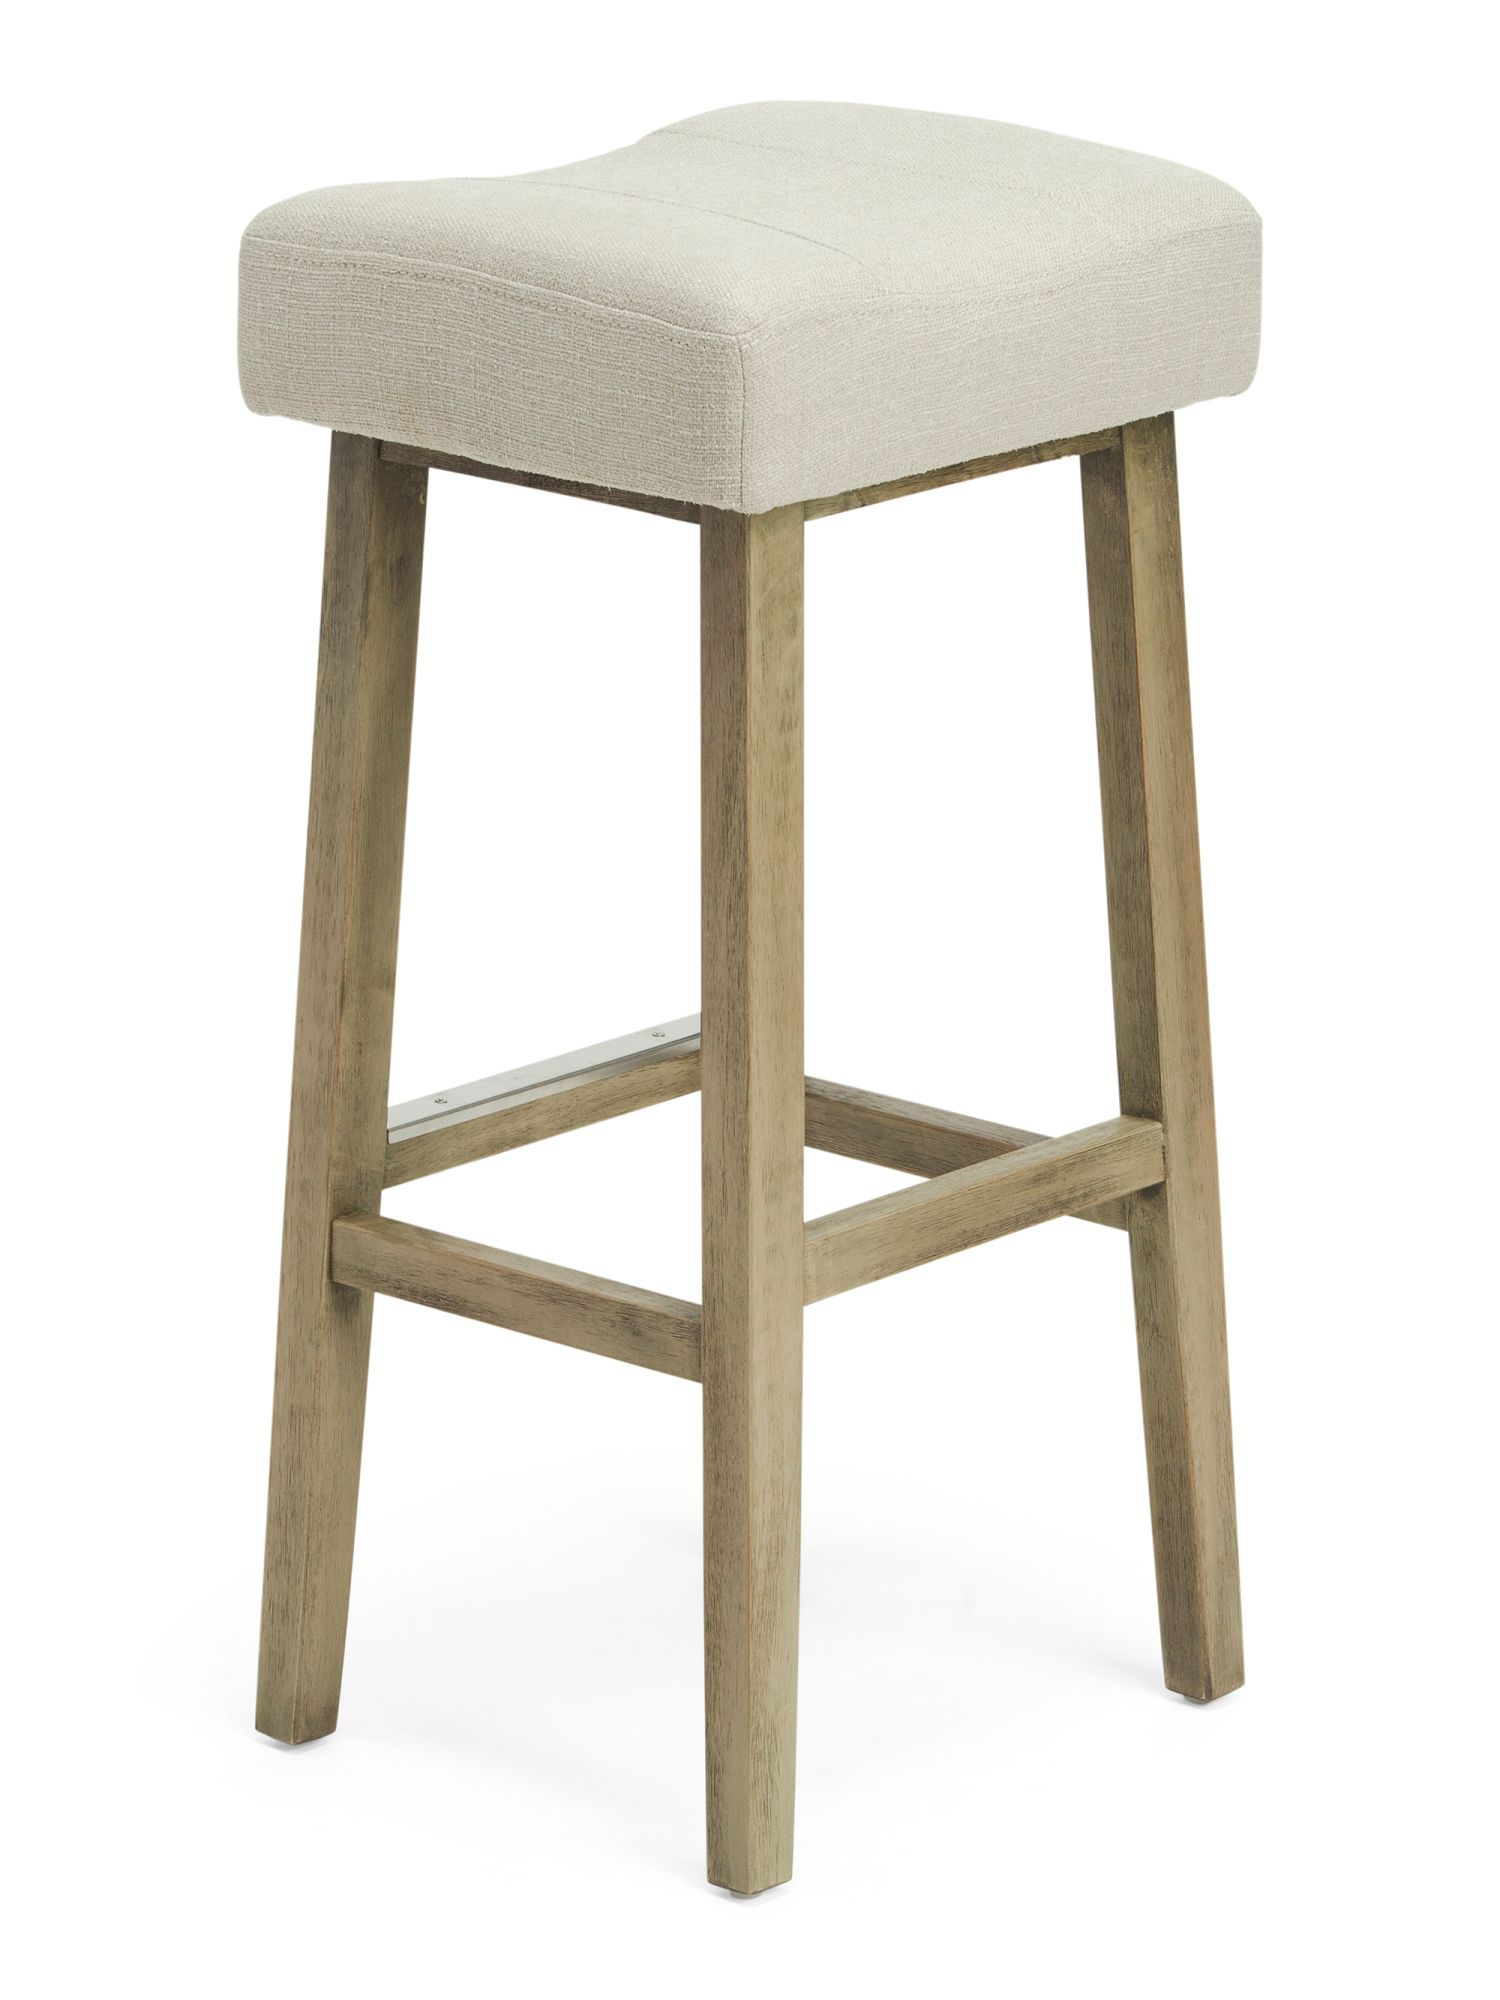 Lajas Backless Barstool Backless Bar Stools Bar Stools Accent Furniture